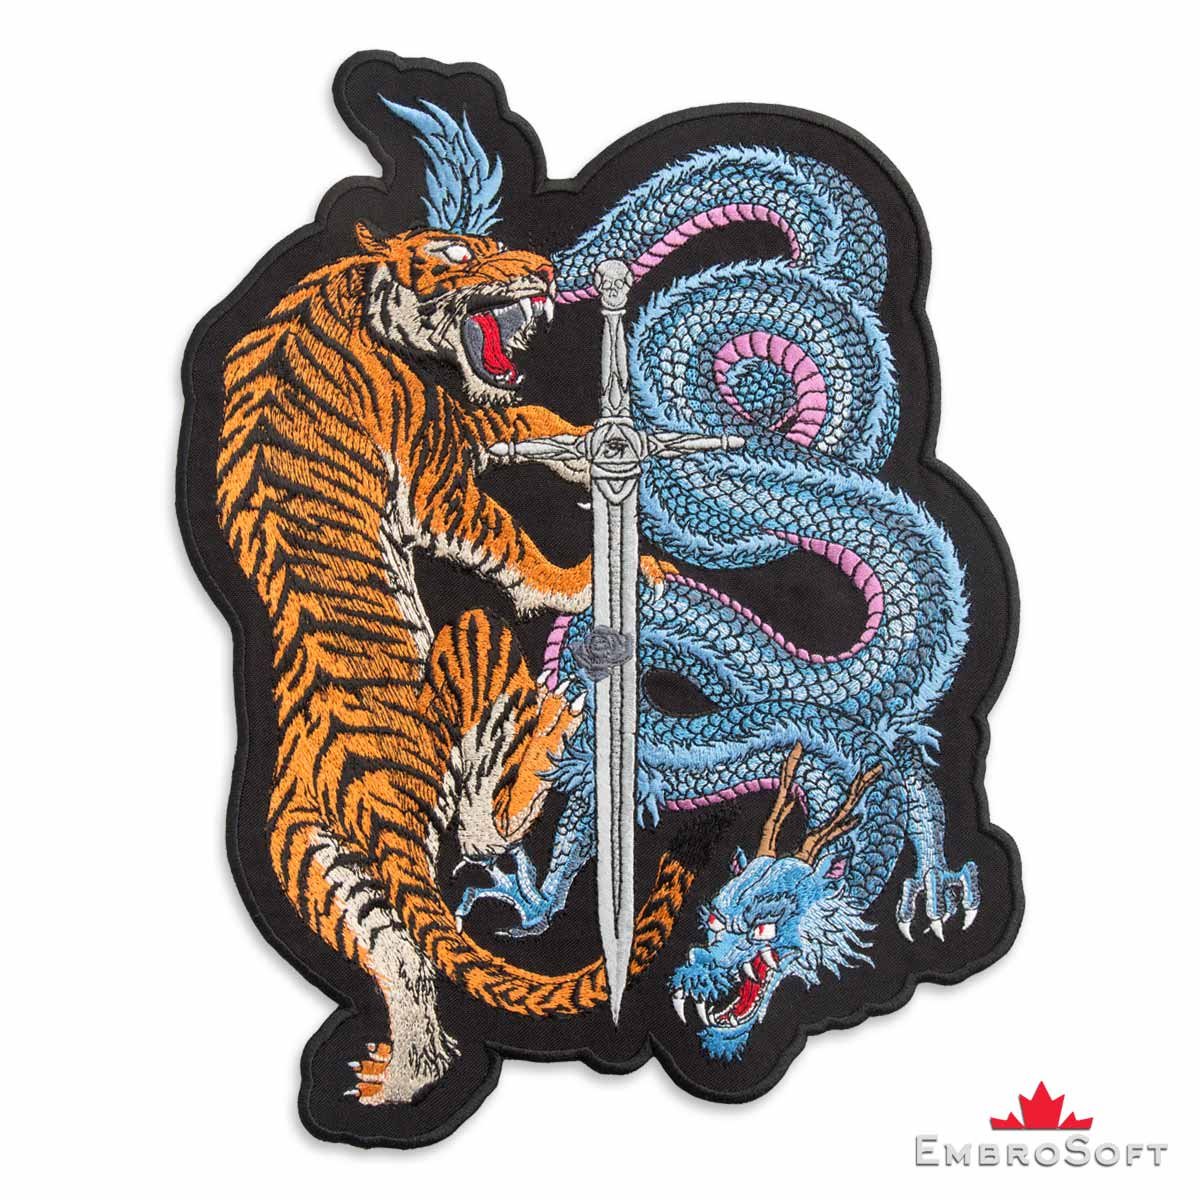 Tiger and Dragon with sword Embroidered Patch - EmbroSoft